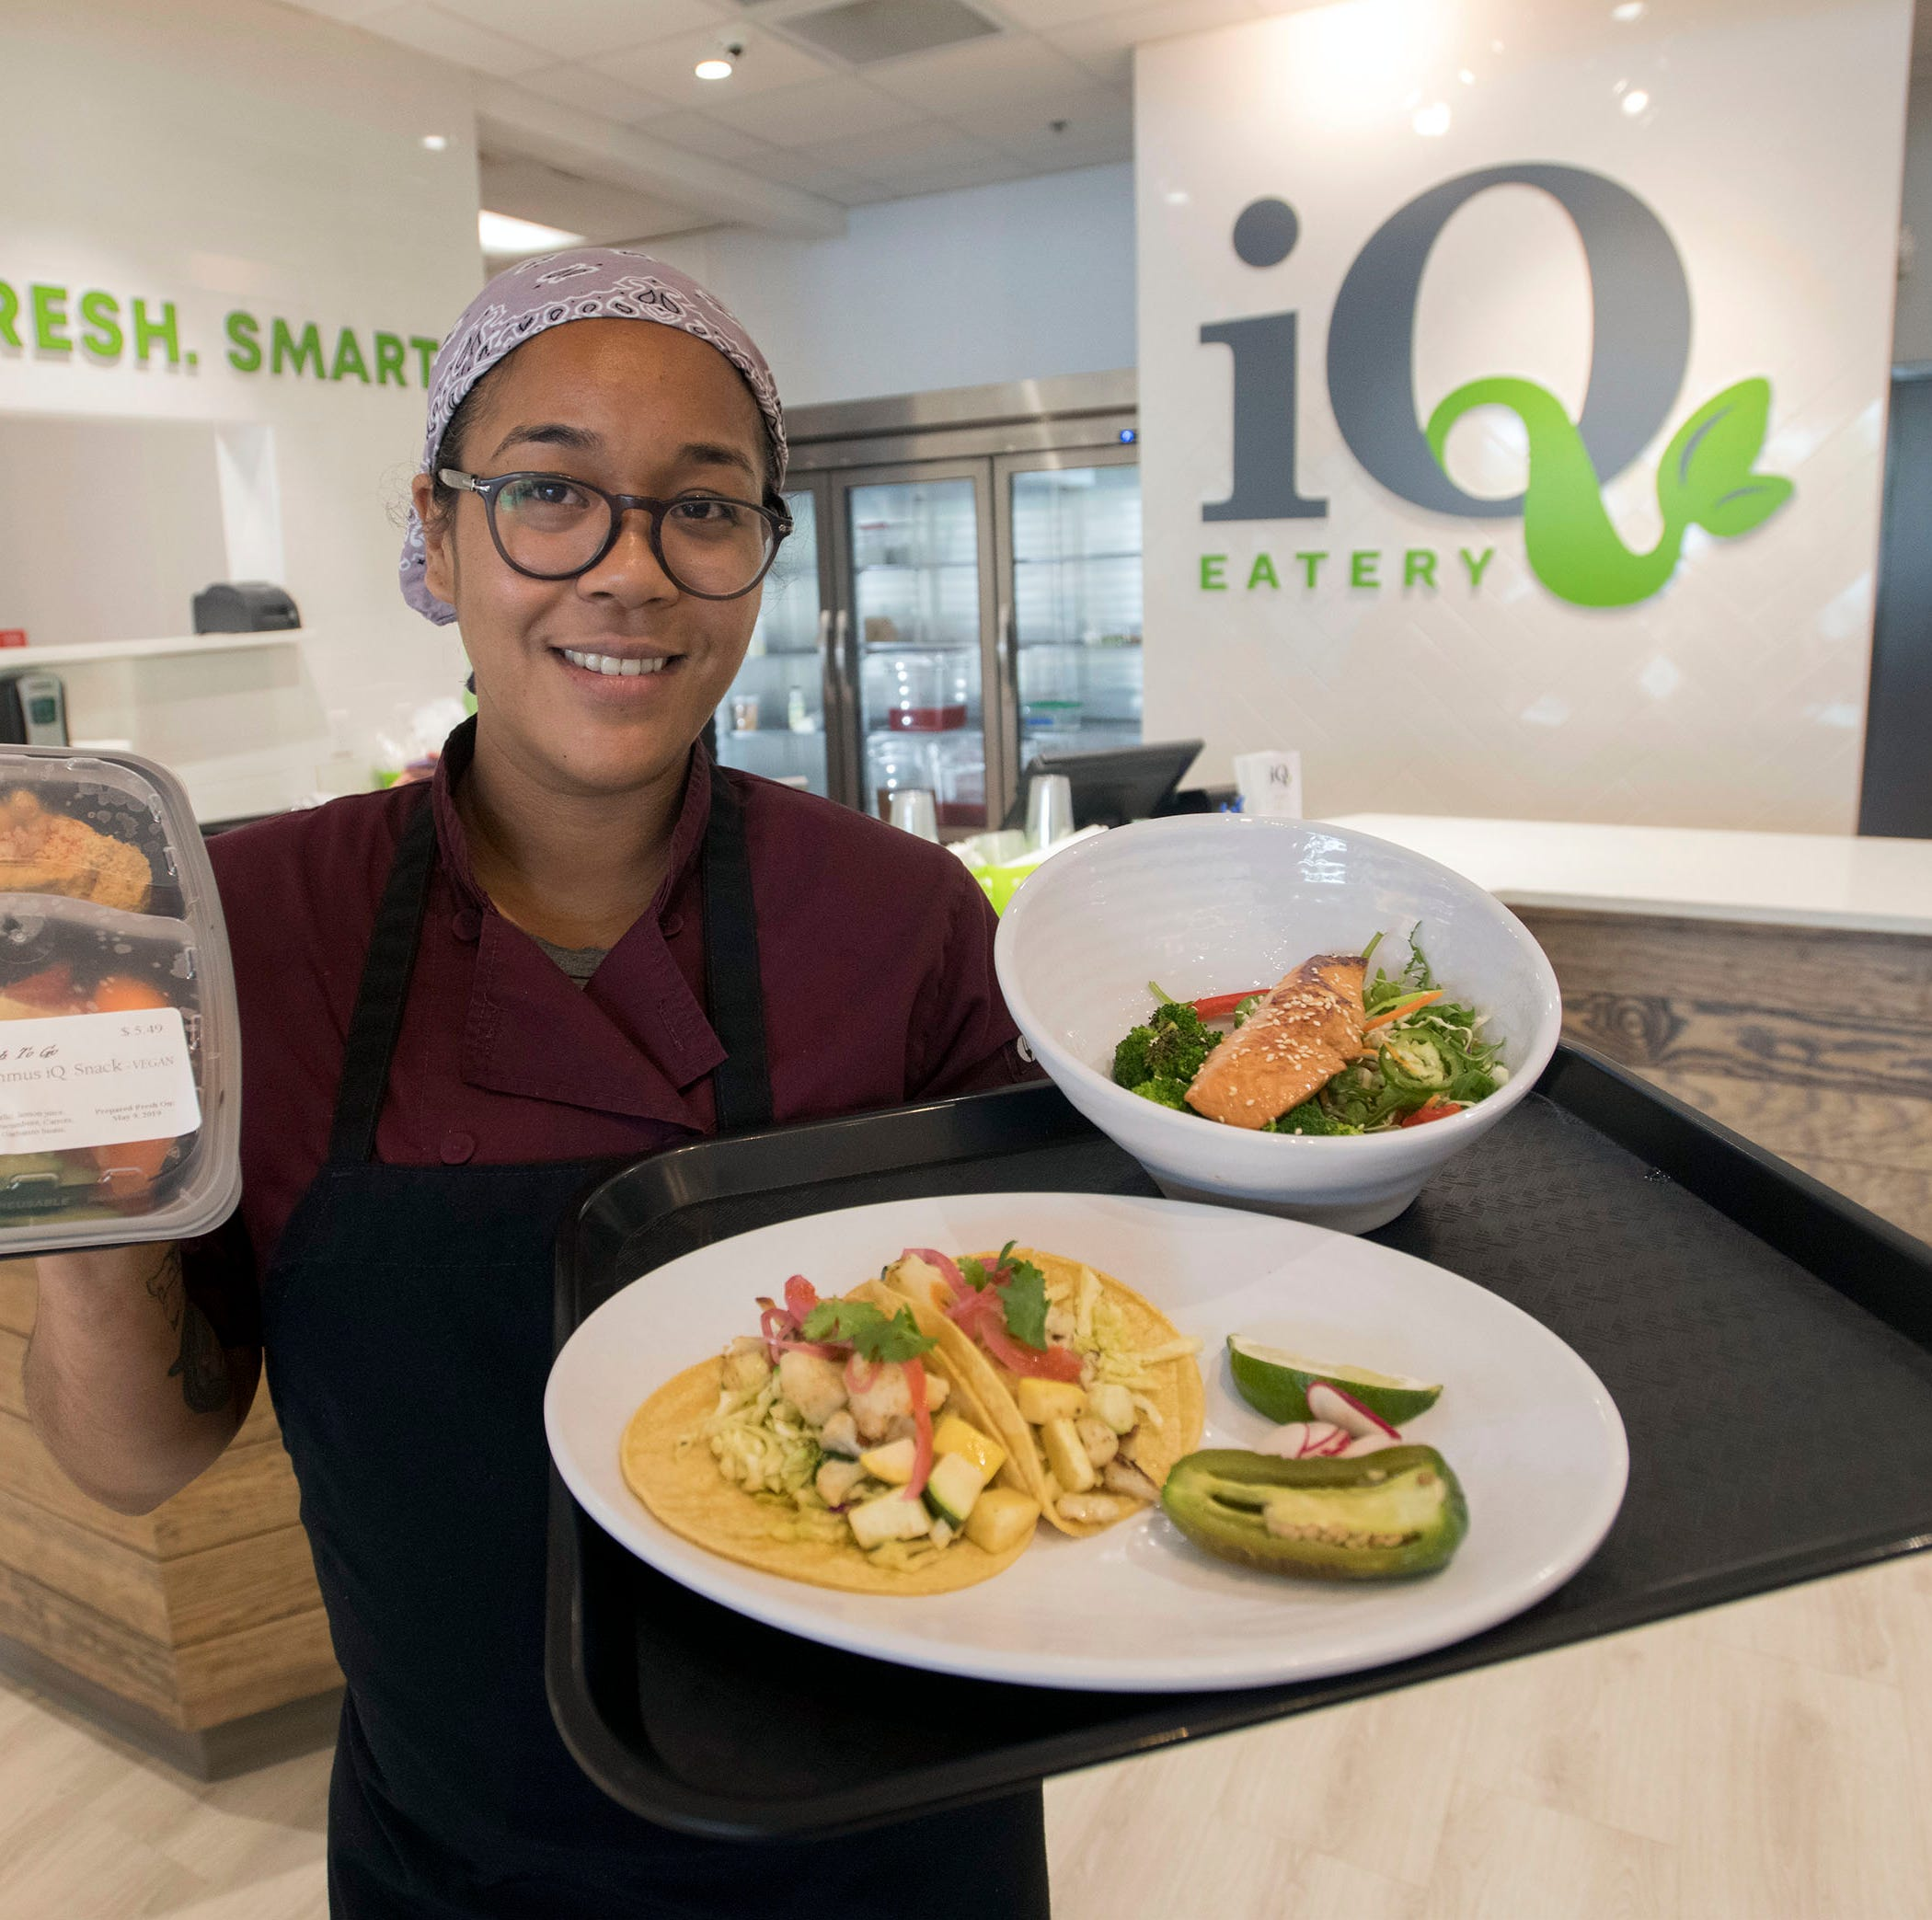 iQ Eatery restaurant opens in West Pensacola, will launch online meal plan program